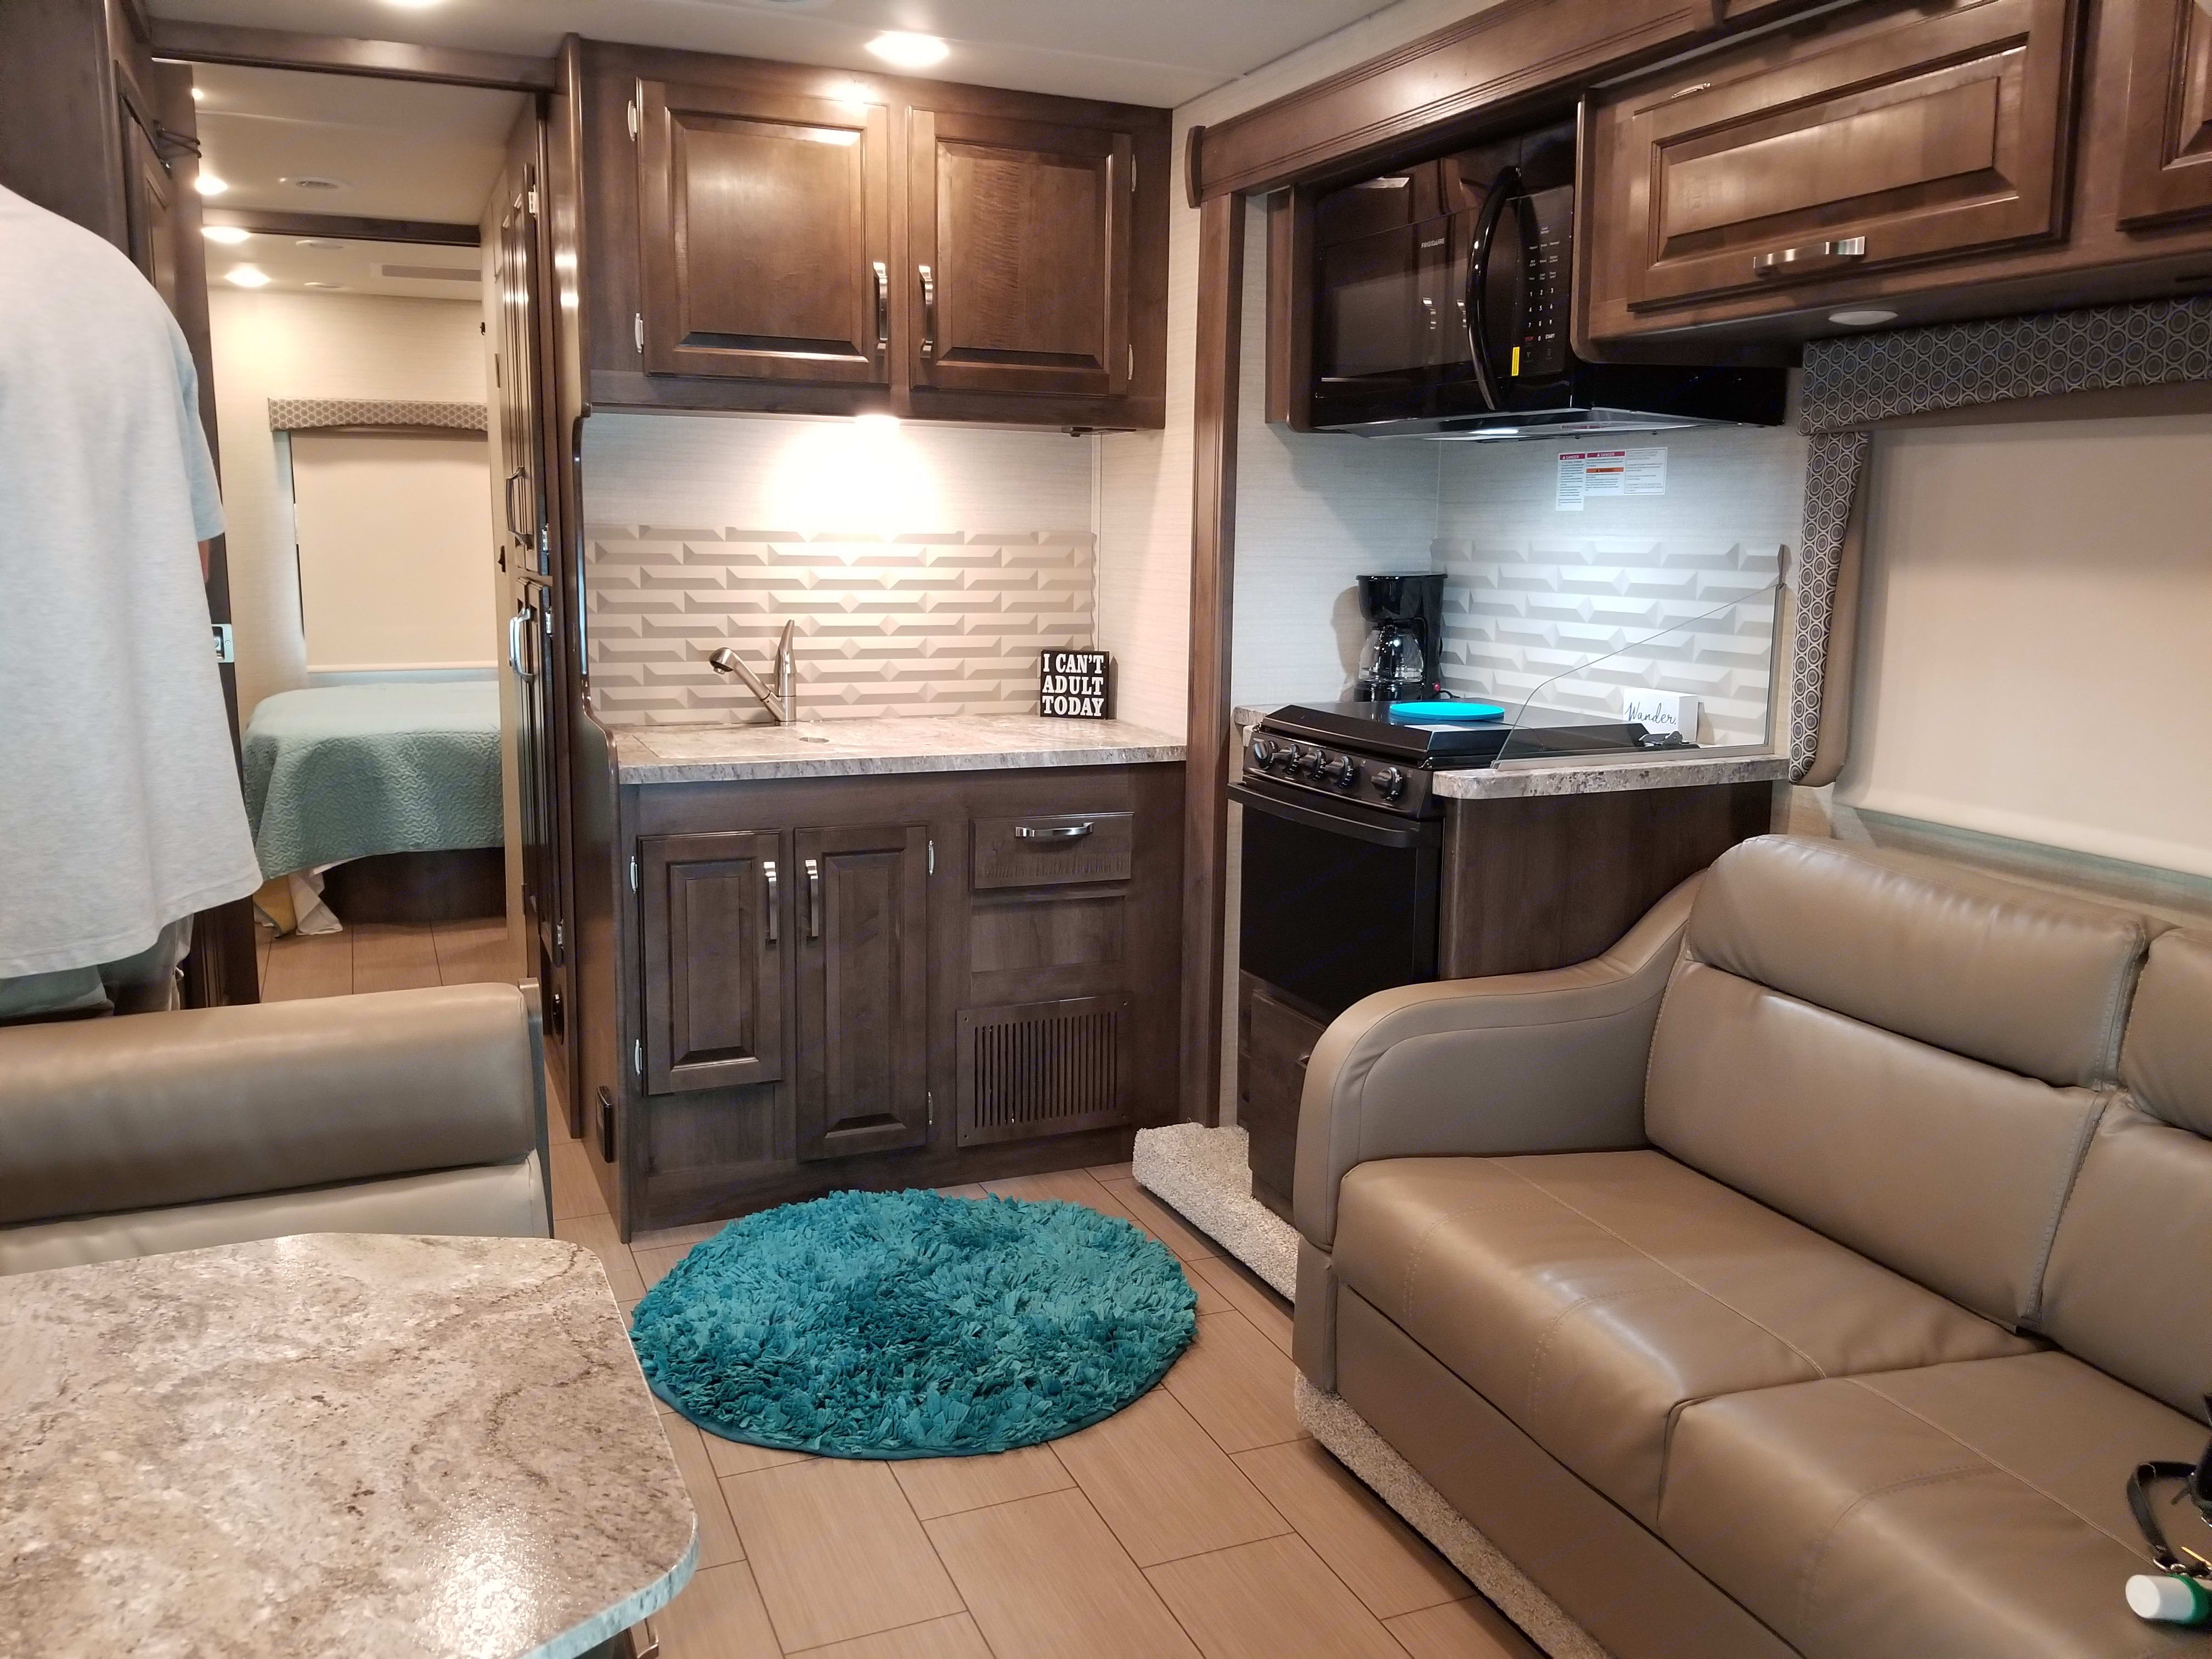 Kitchen has microwave, Stove, Oven, mixing bowls utensils, silverware,Plates, bowls and cups. Also a toaster and a Coffee maker with filters.. Jayco Greyhawk 2018